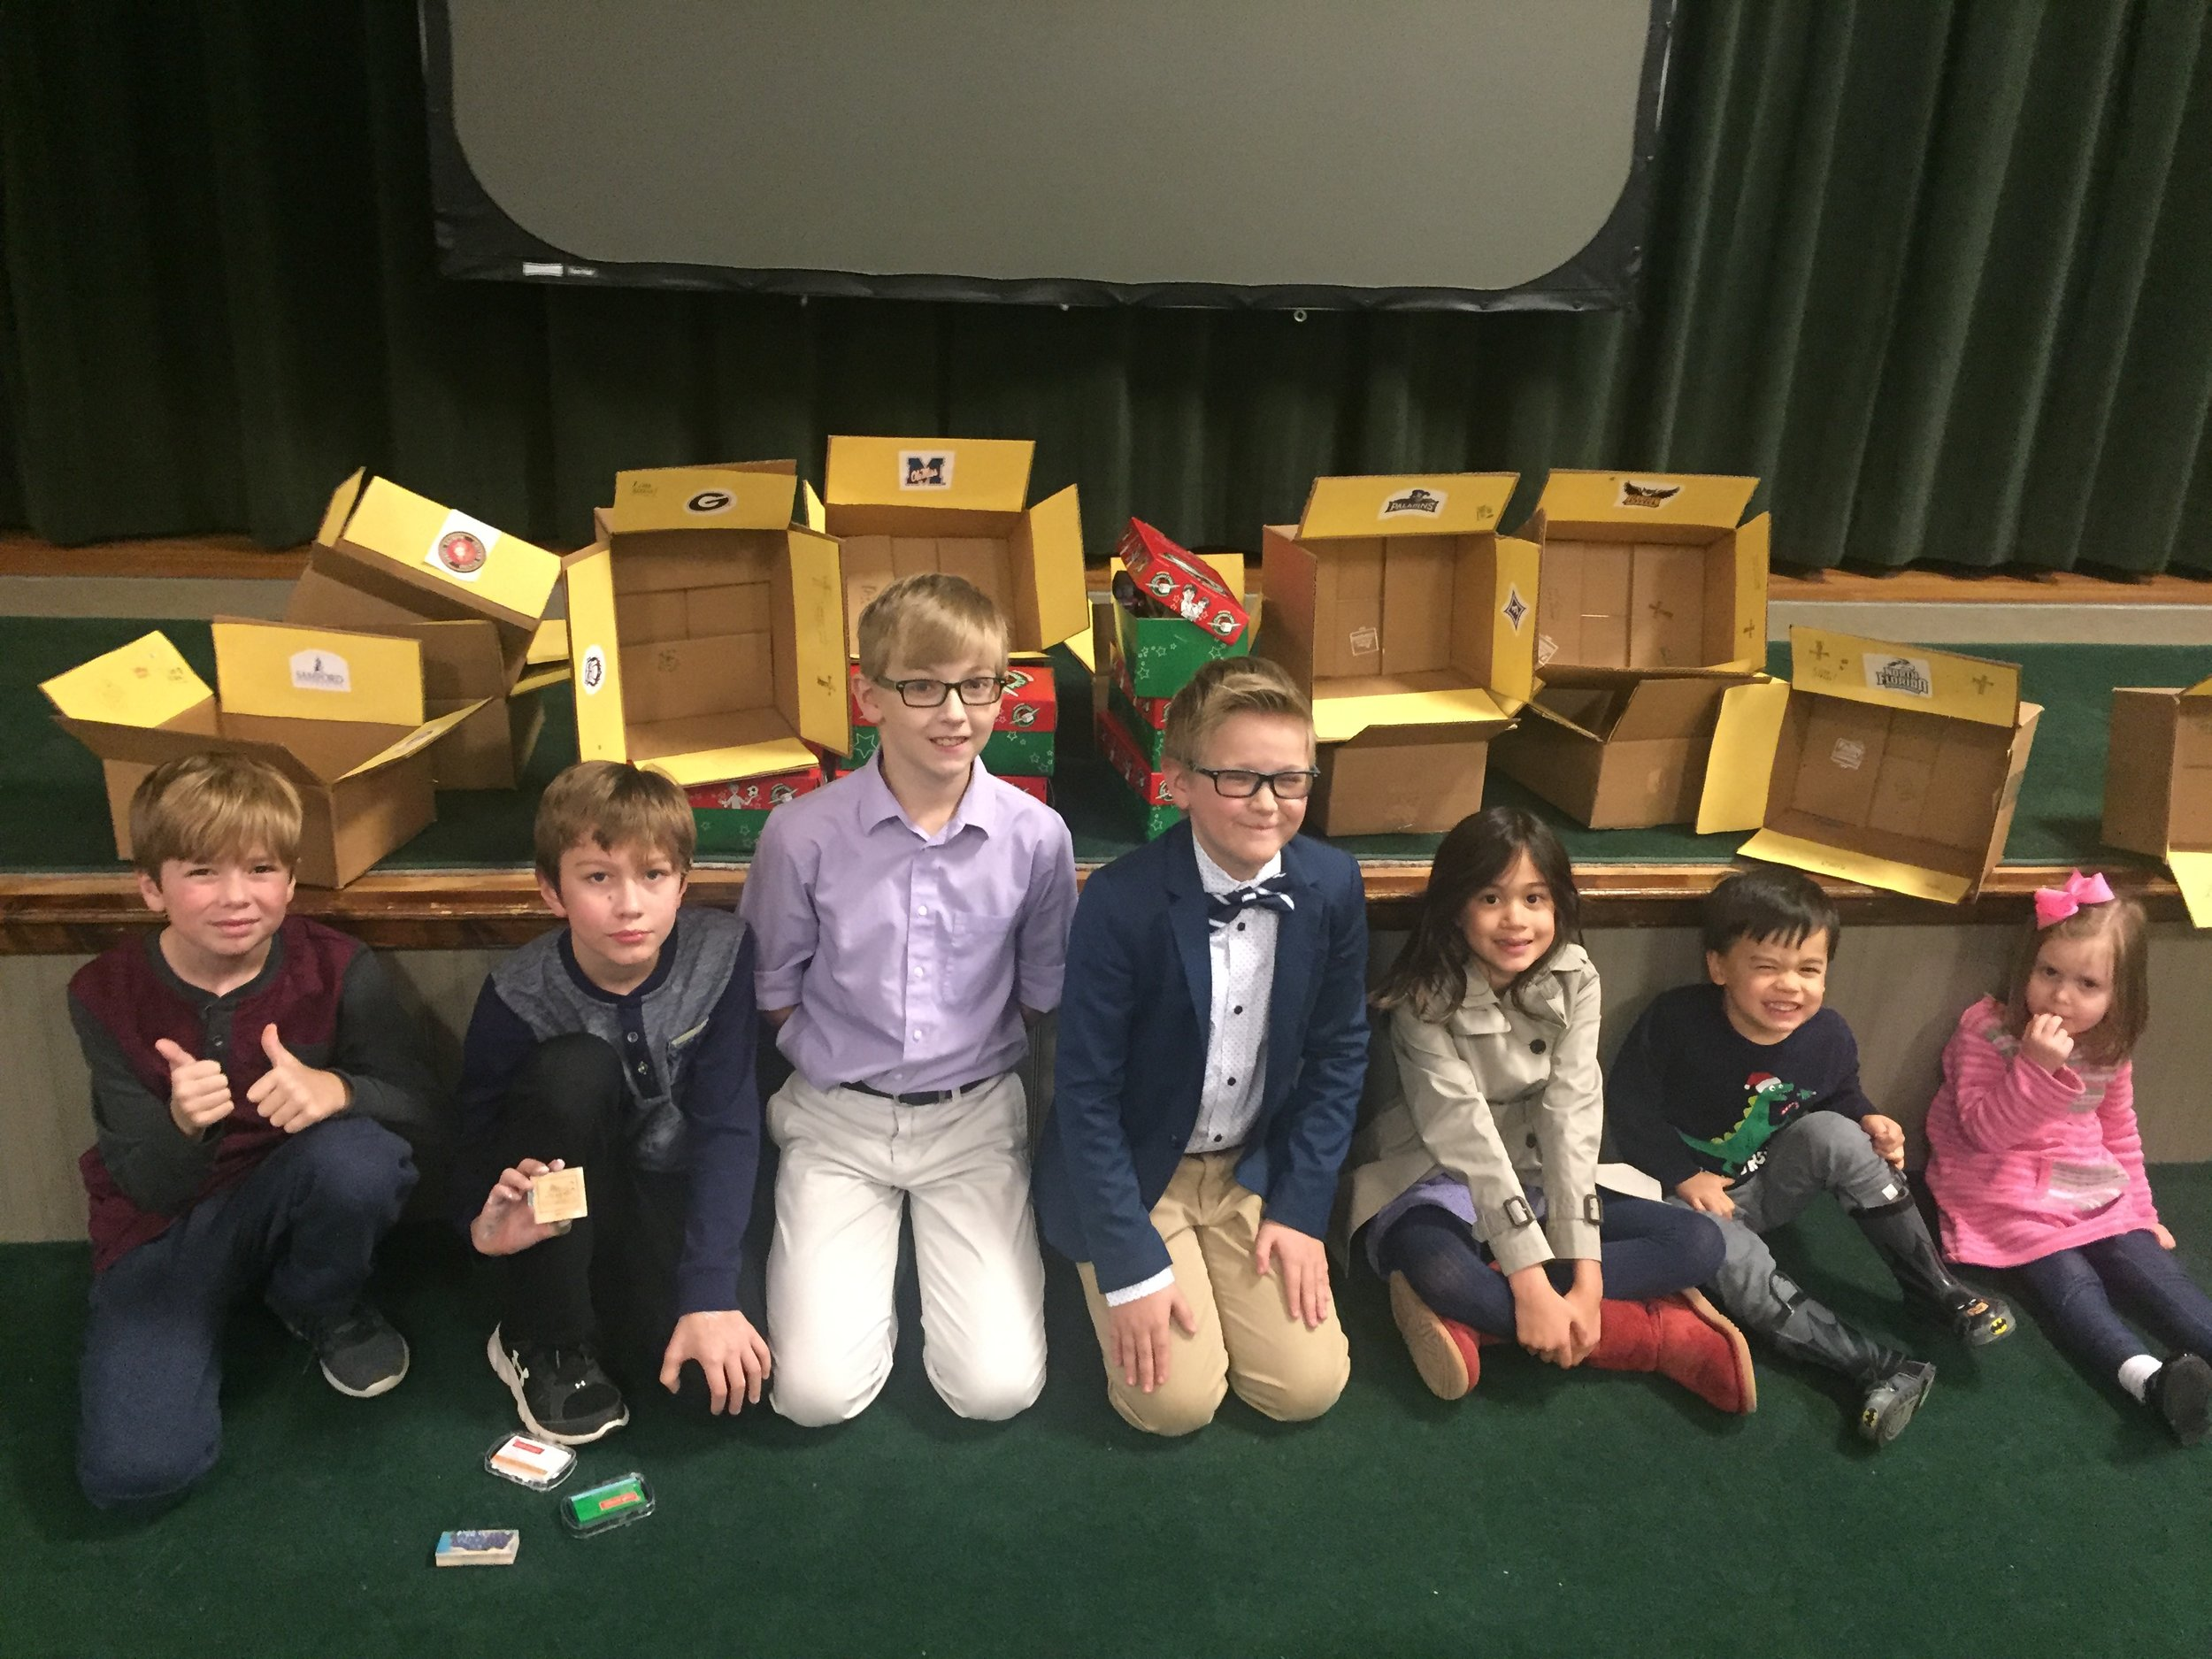 The children decorated care packages and wrote notes of encouragement for the church's college students and filled 6 shoeboxes for Operation Christmas Child.